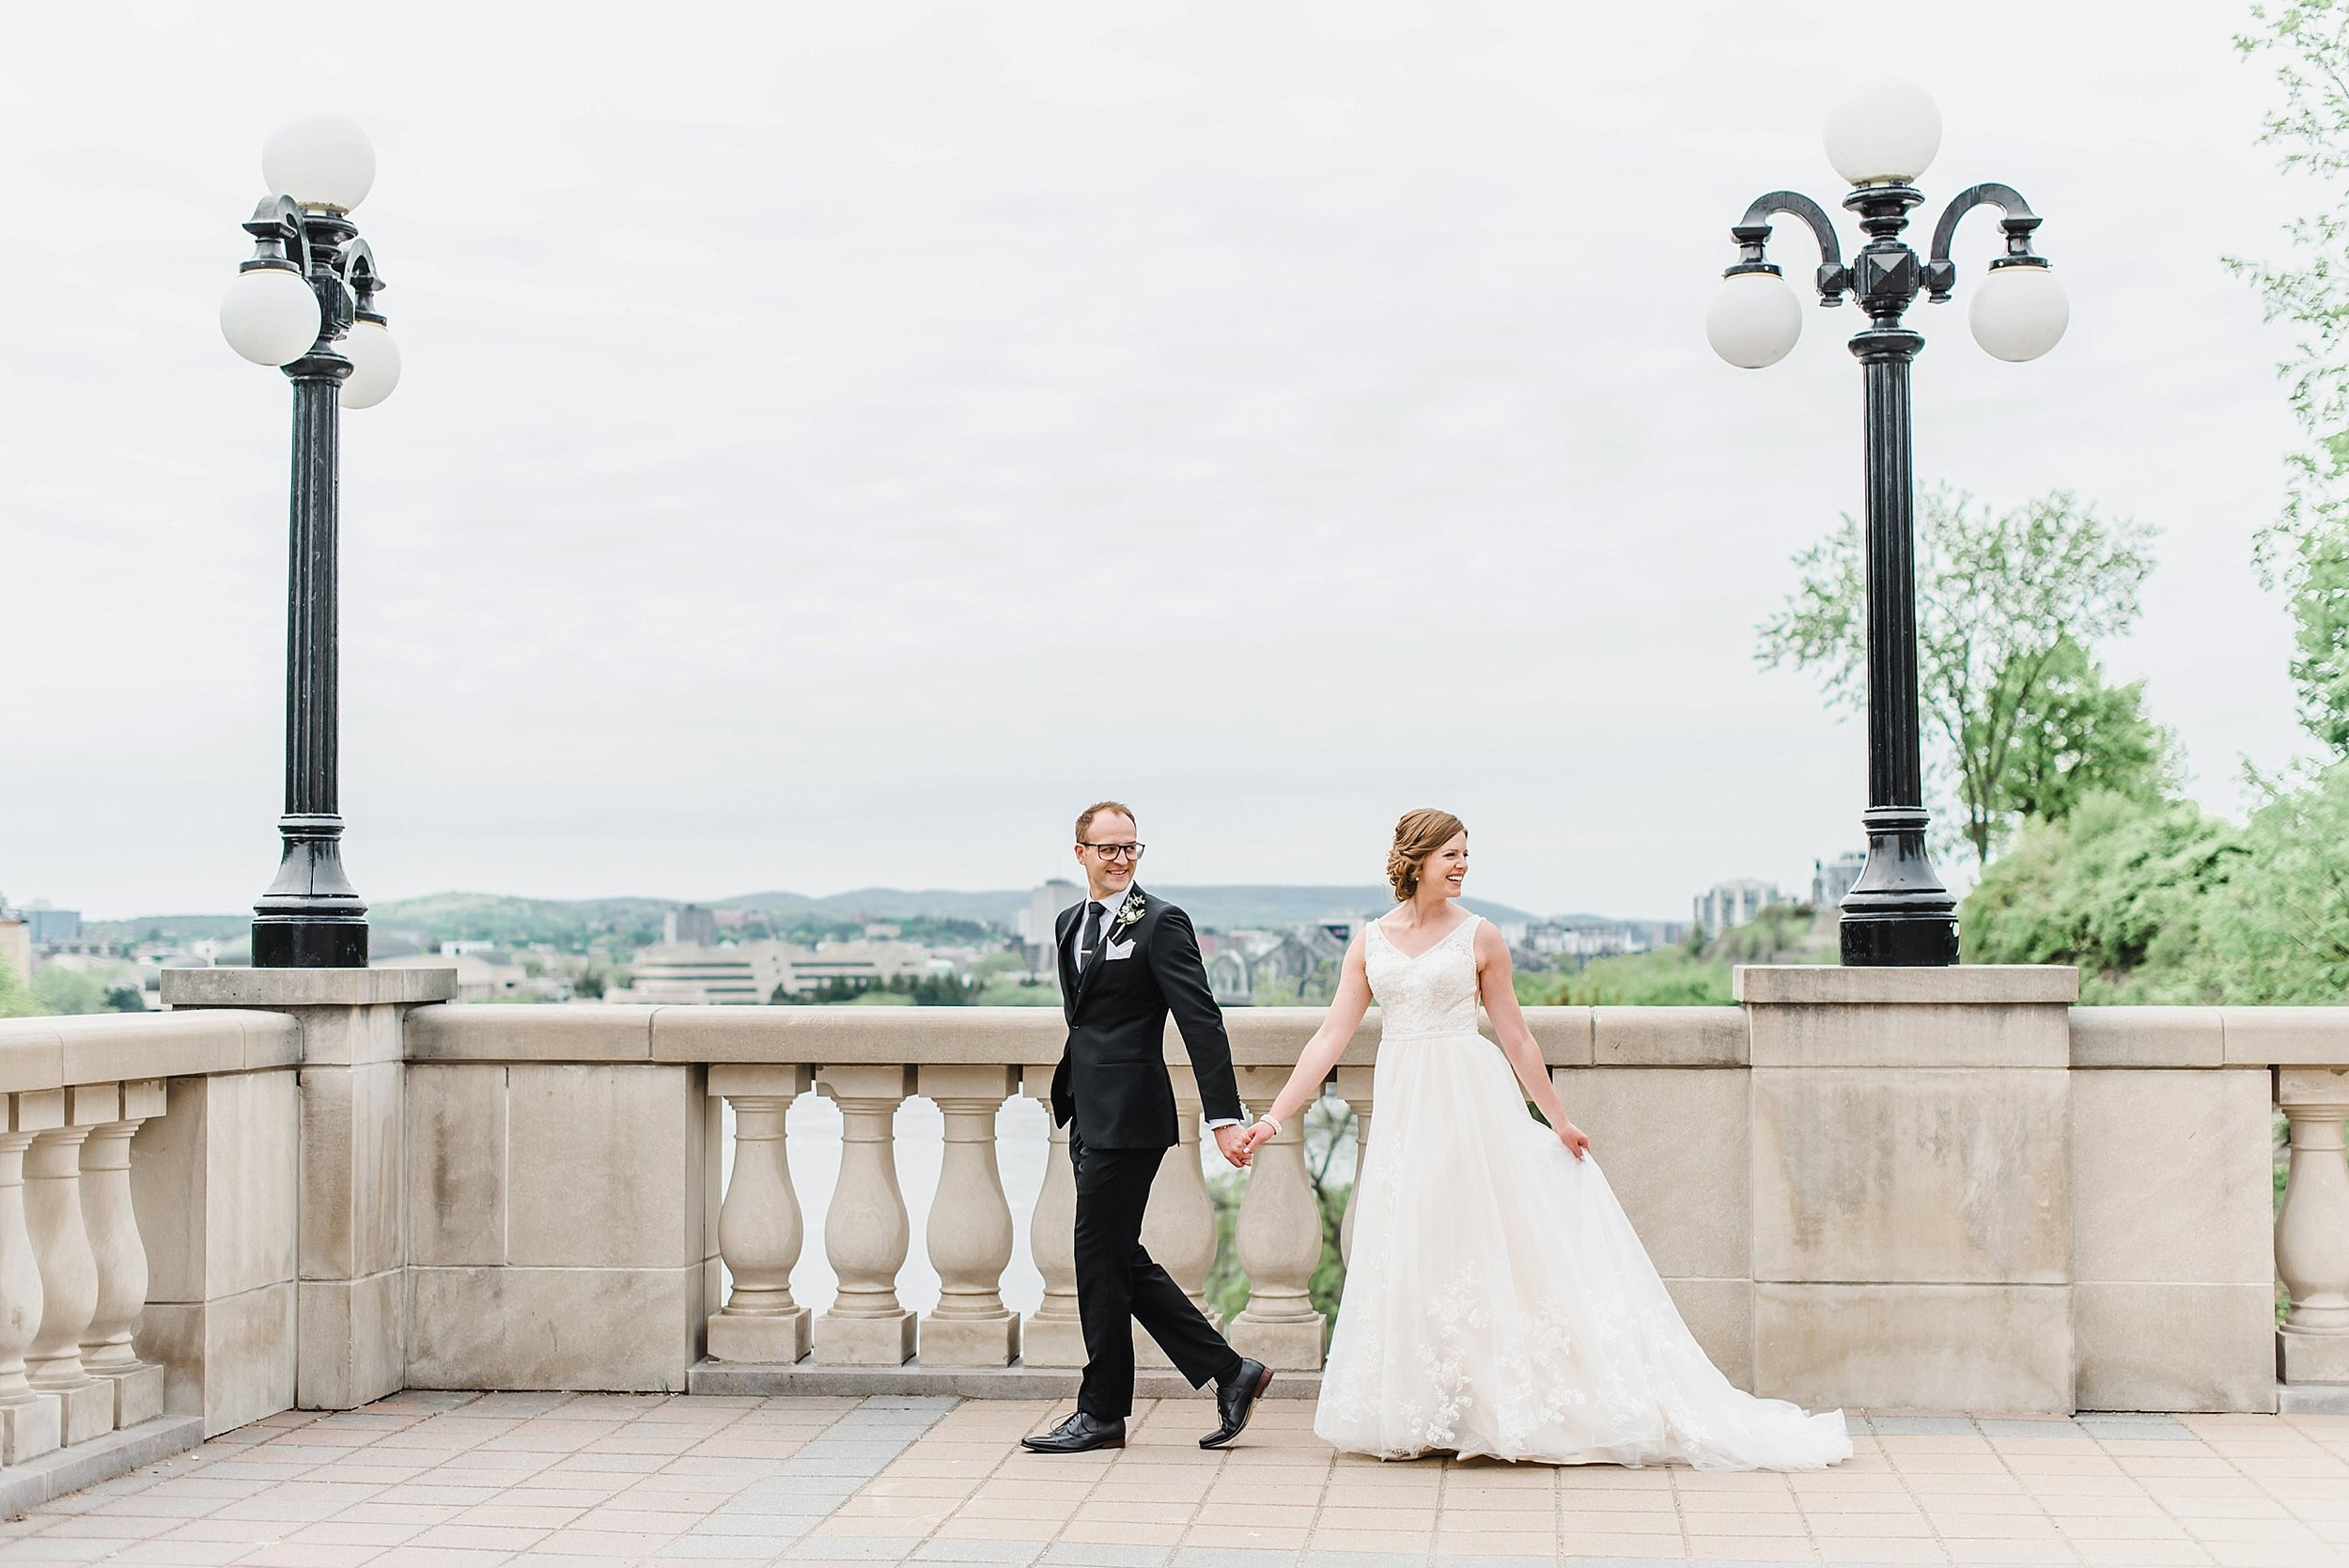 light airy indie fine art ottawa wedding photographer | Ali and Batoul Photography_0348.jpg